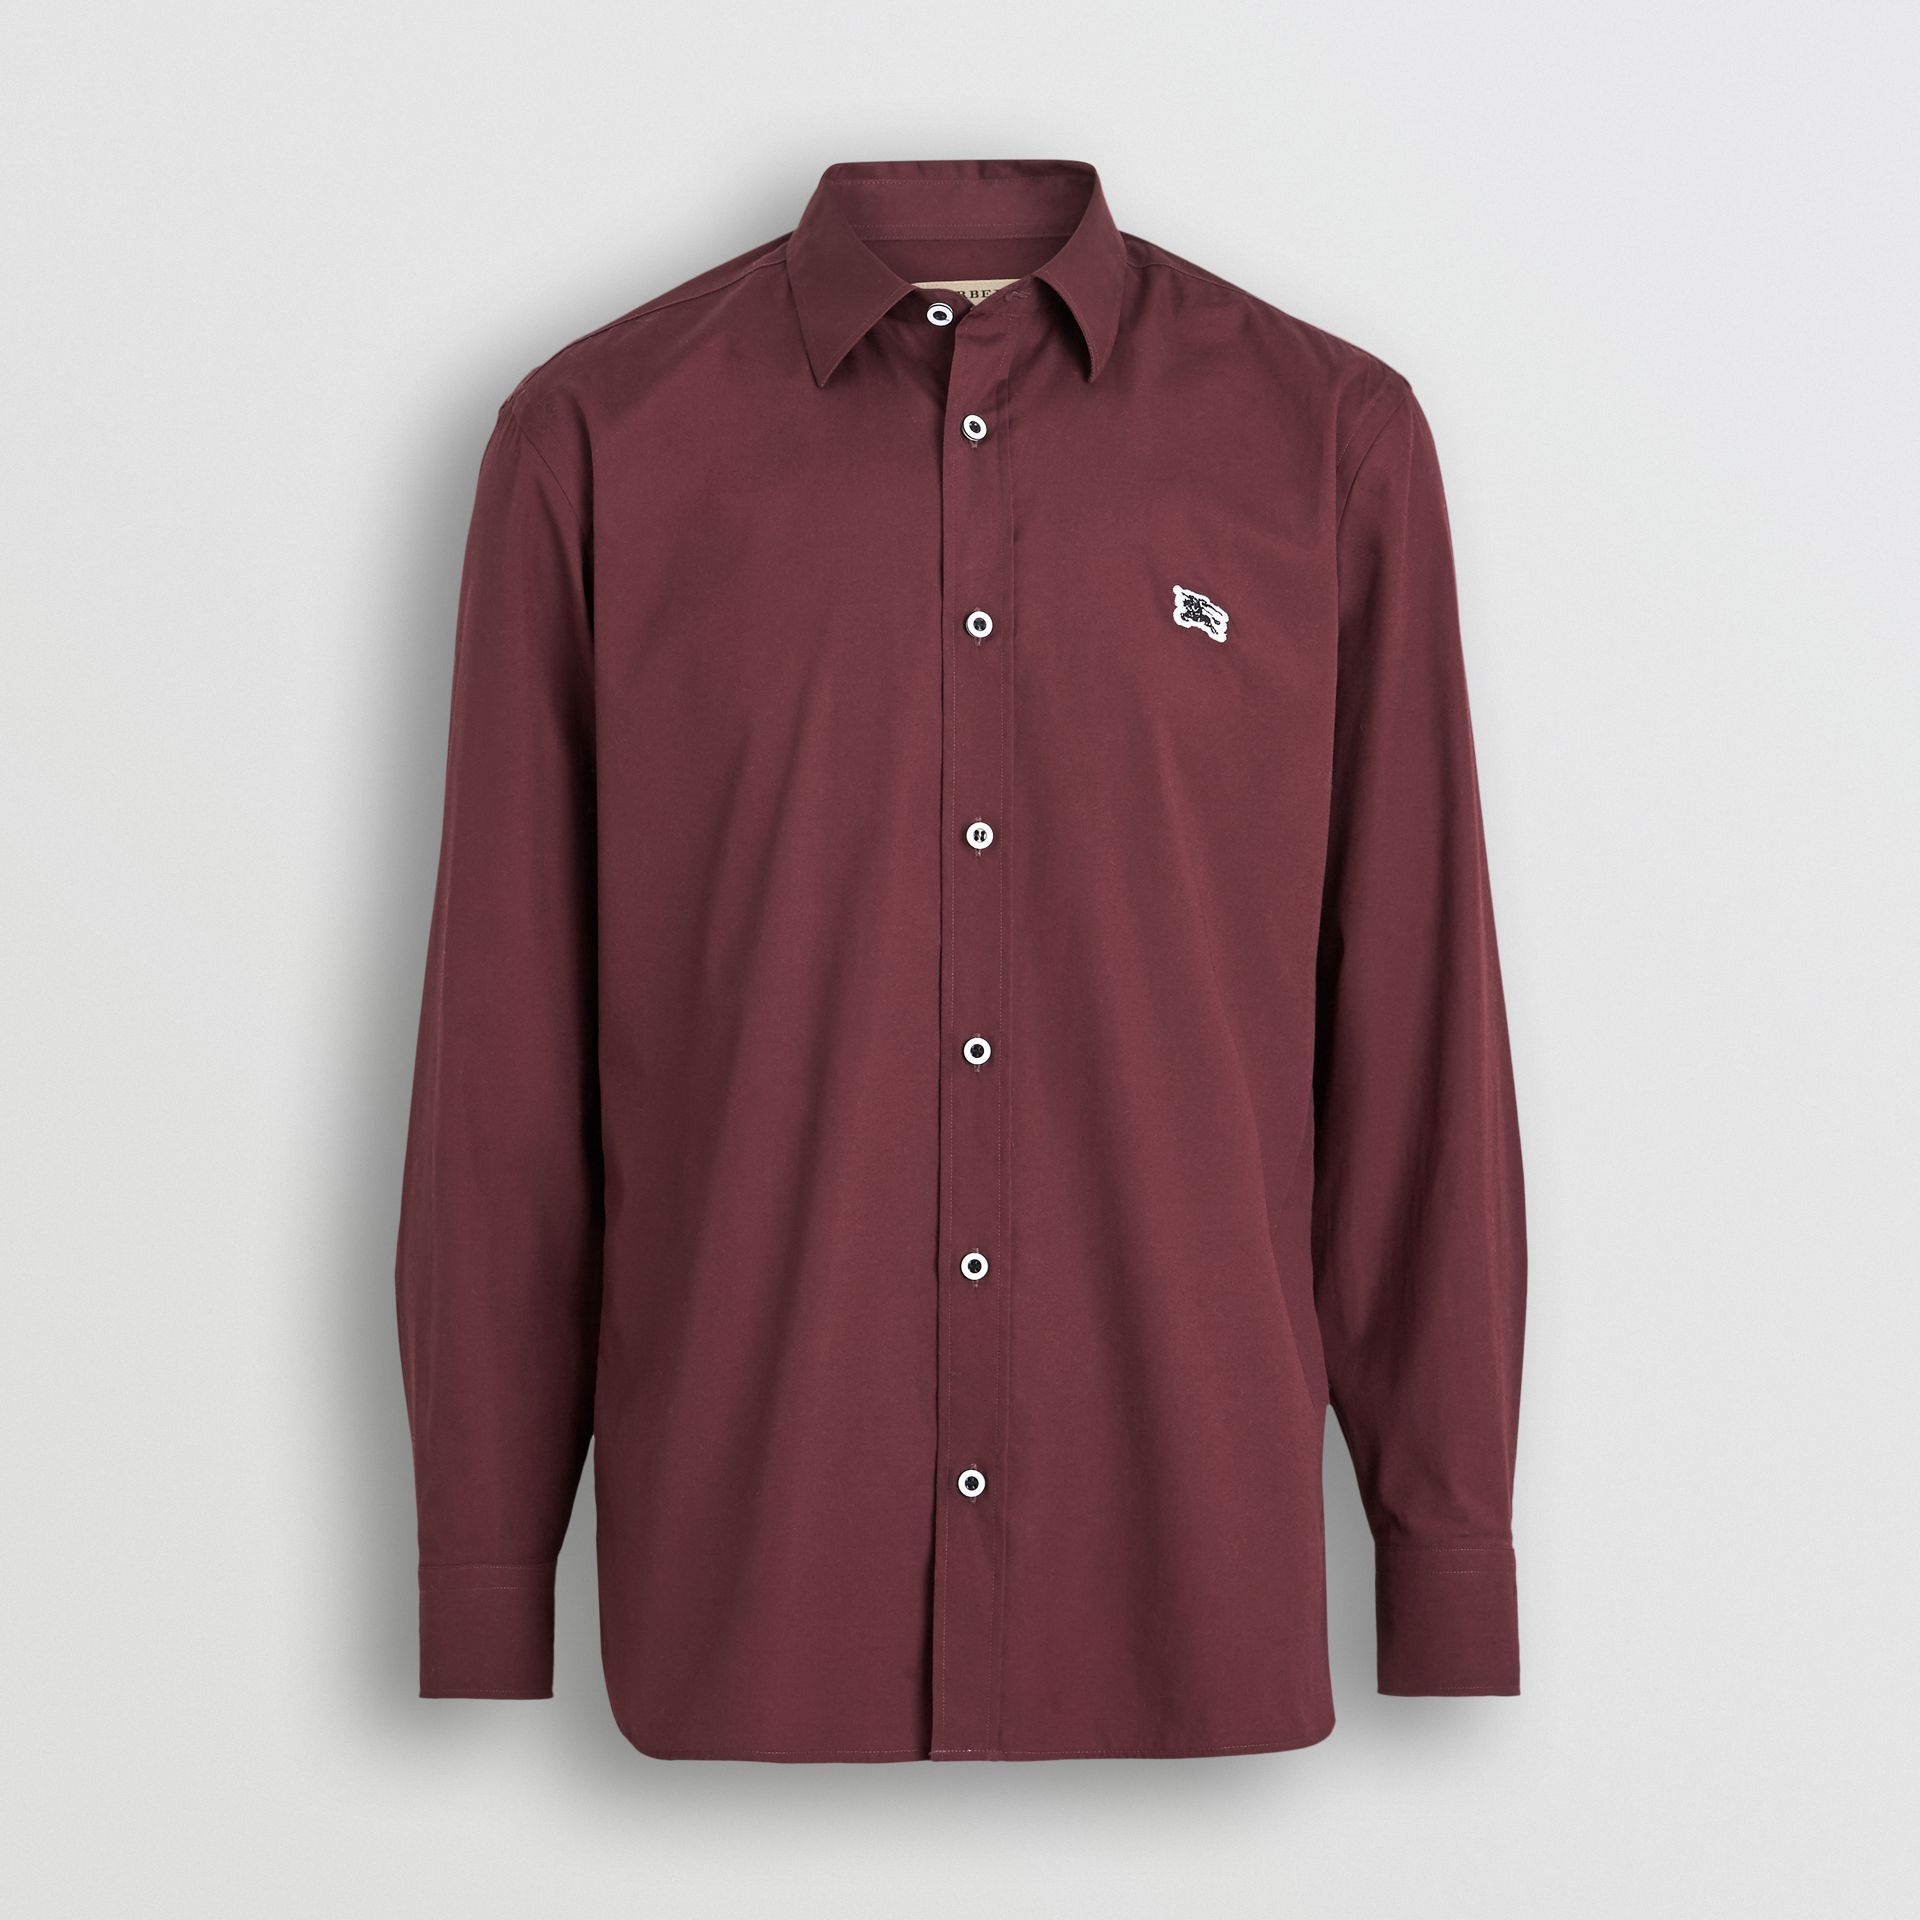 Contrast Button Stretch Cotton Shirt in Oxblood - Men | Burberry Singapore - gallery image 3